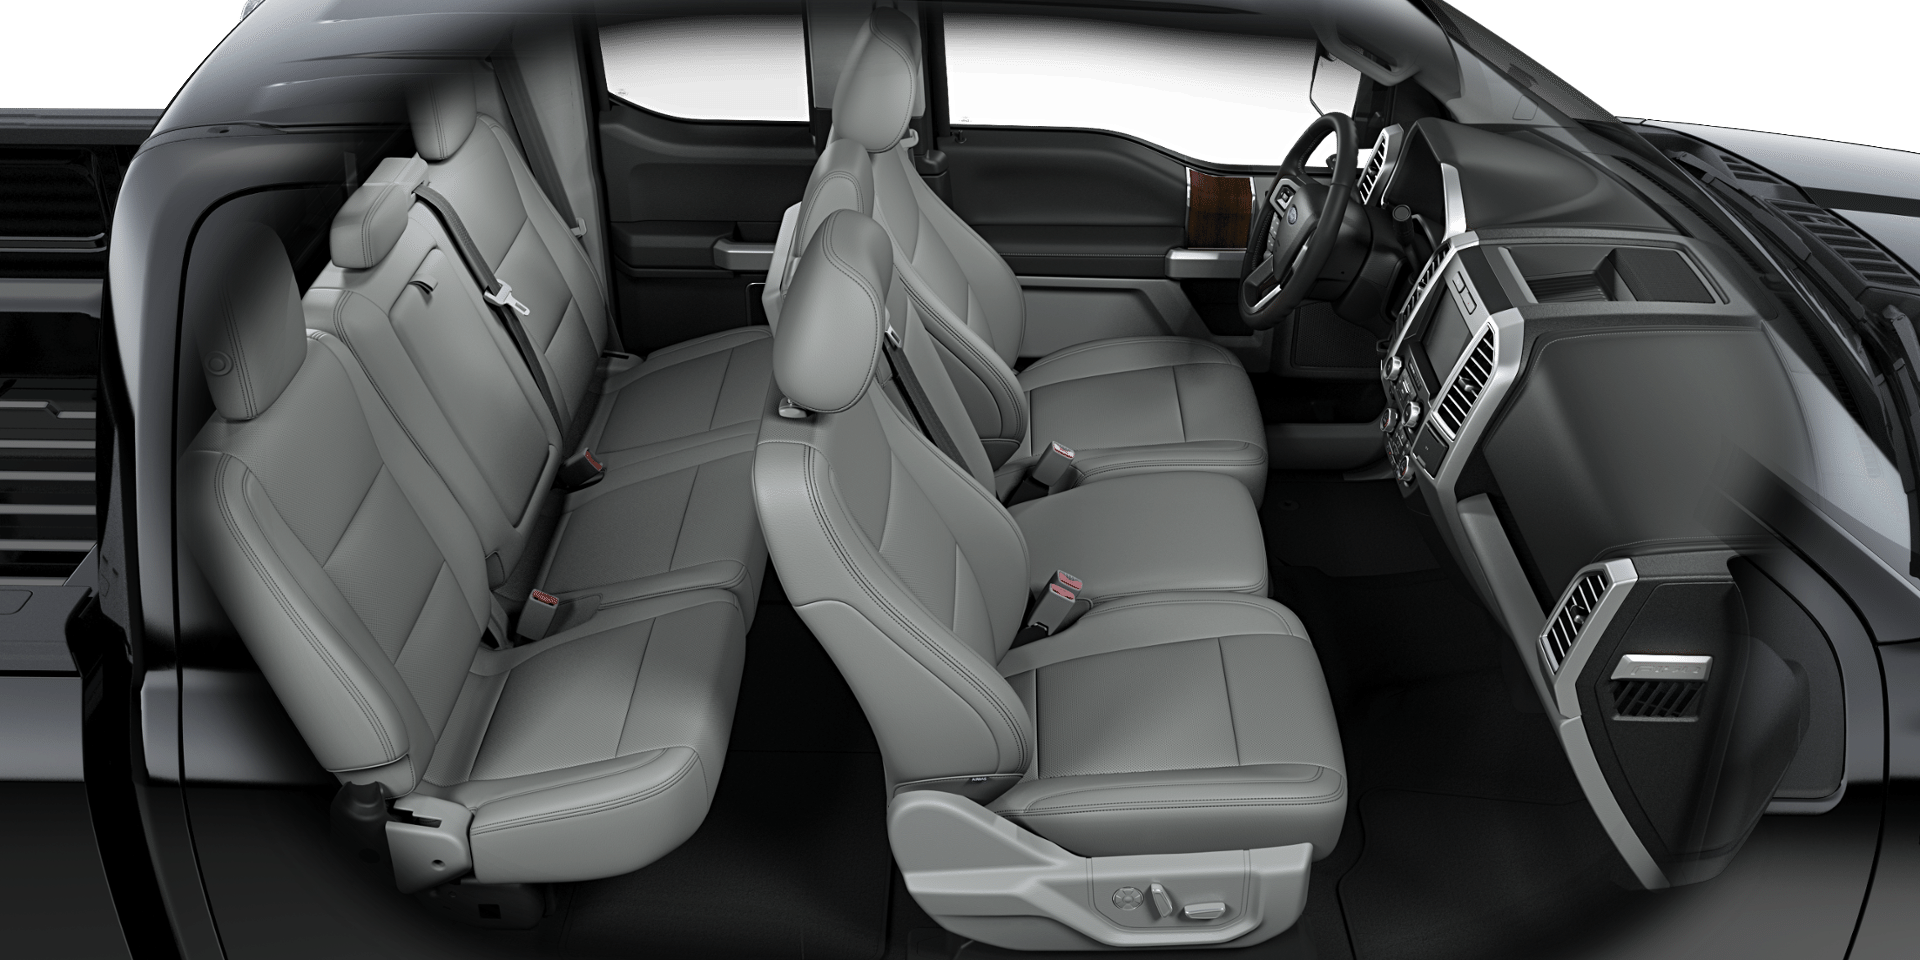 2017 Ford F 150 Lariat Interior Aerial View Png